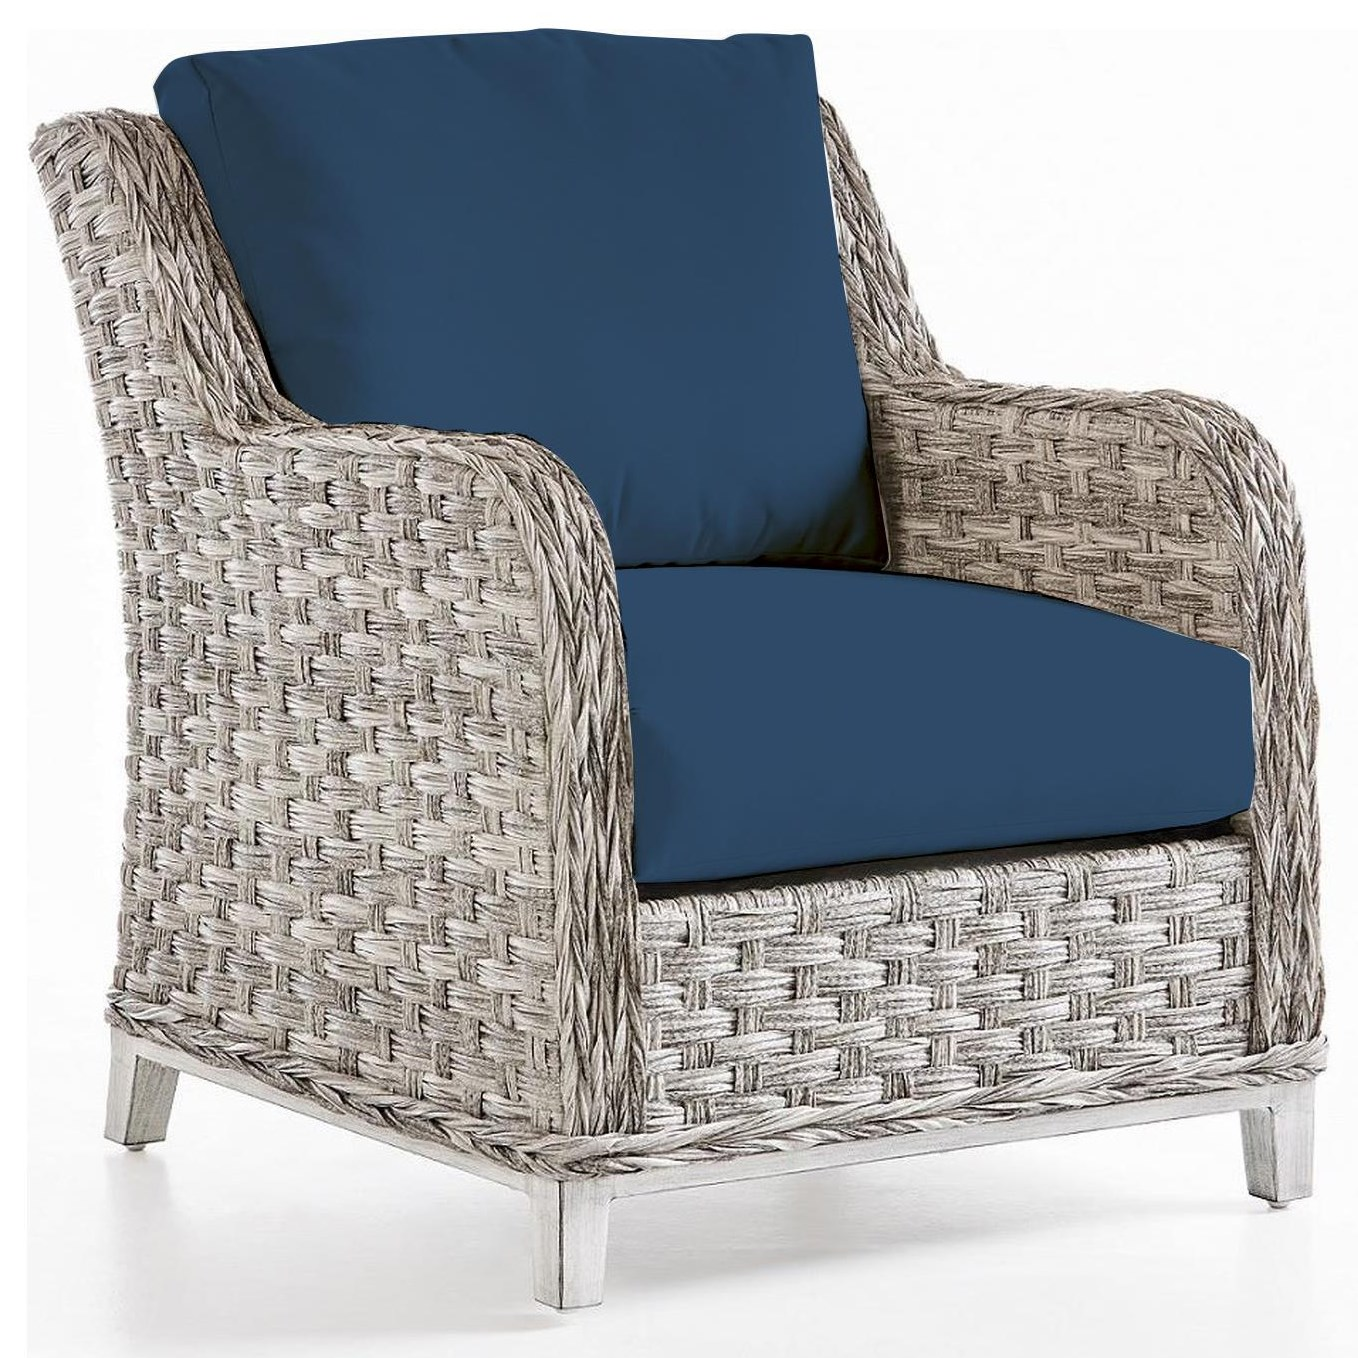 Grande Isle Chair with Luxterior Cushions by South Sea Rattan & Wicker at Johnny Janosik